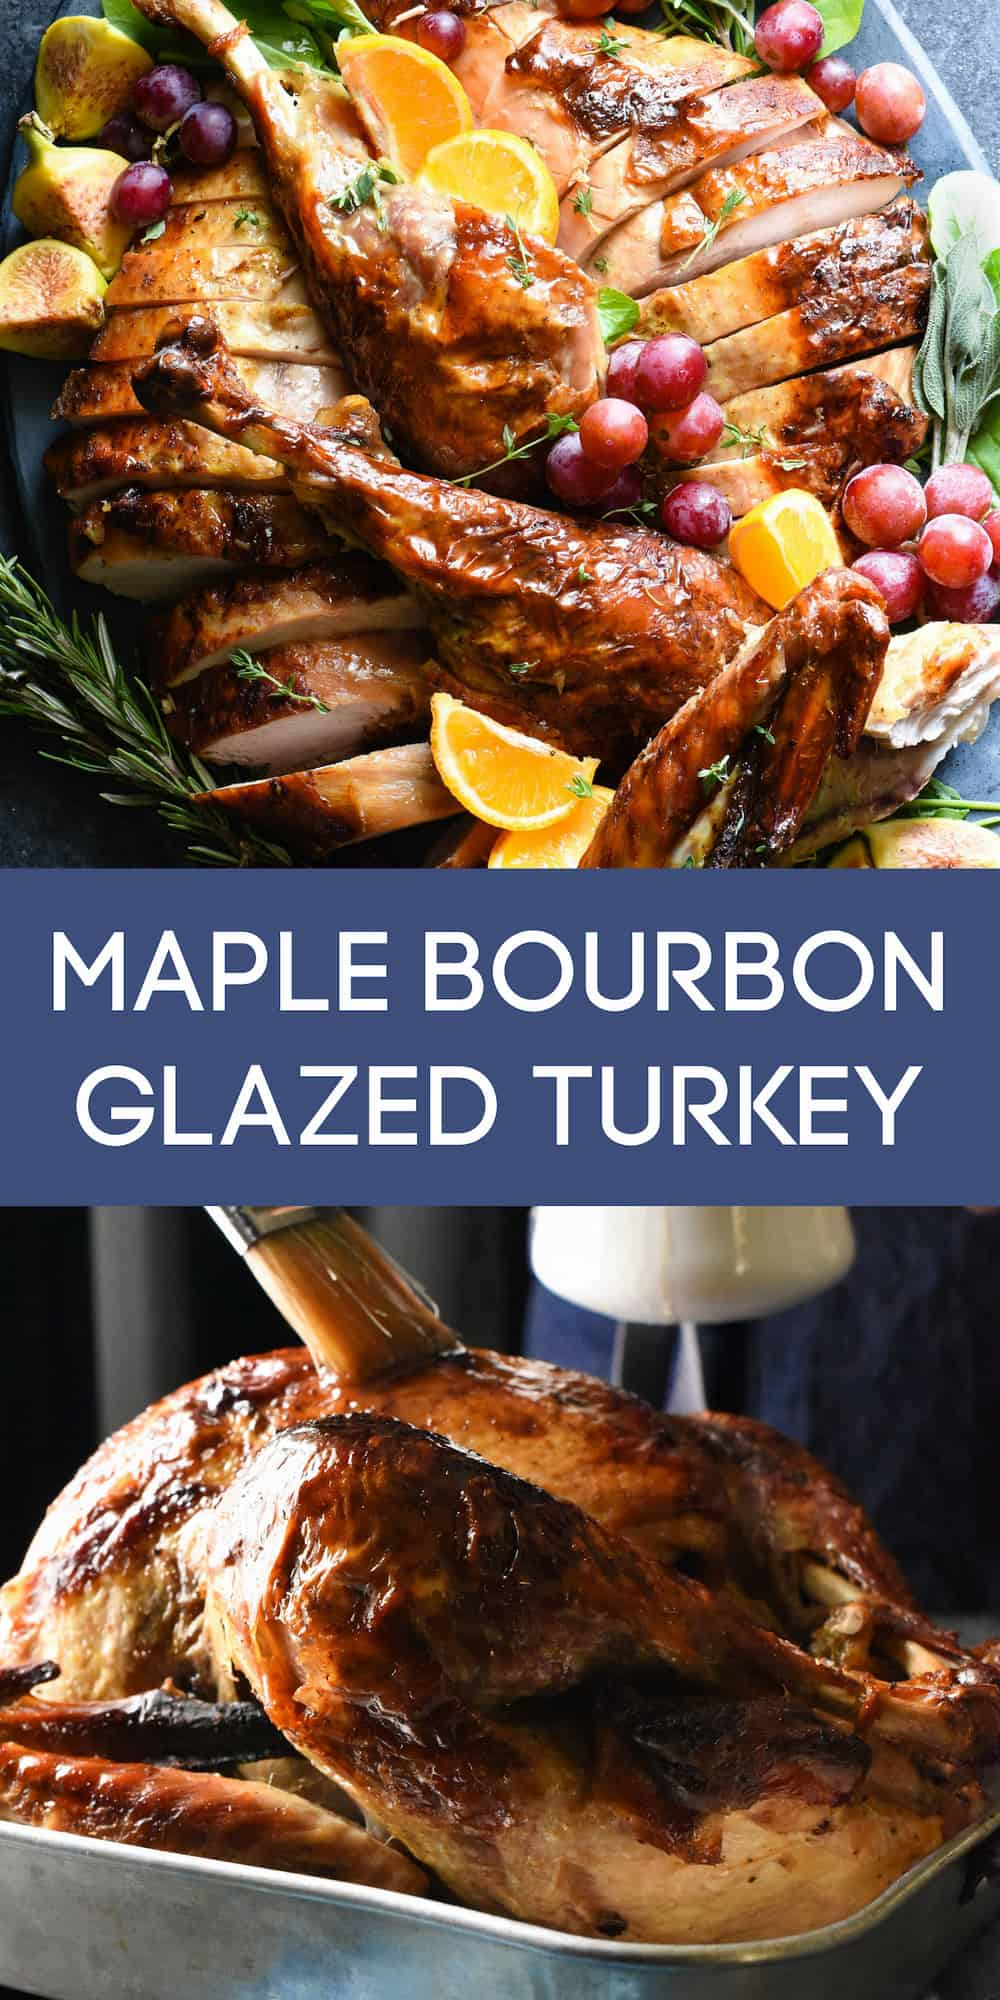 Collage of images of glazed roasted turkey with overlay MAPLE BOURBON GLAZED TURKEY.